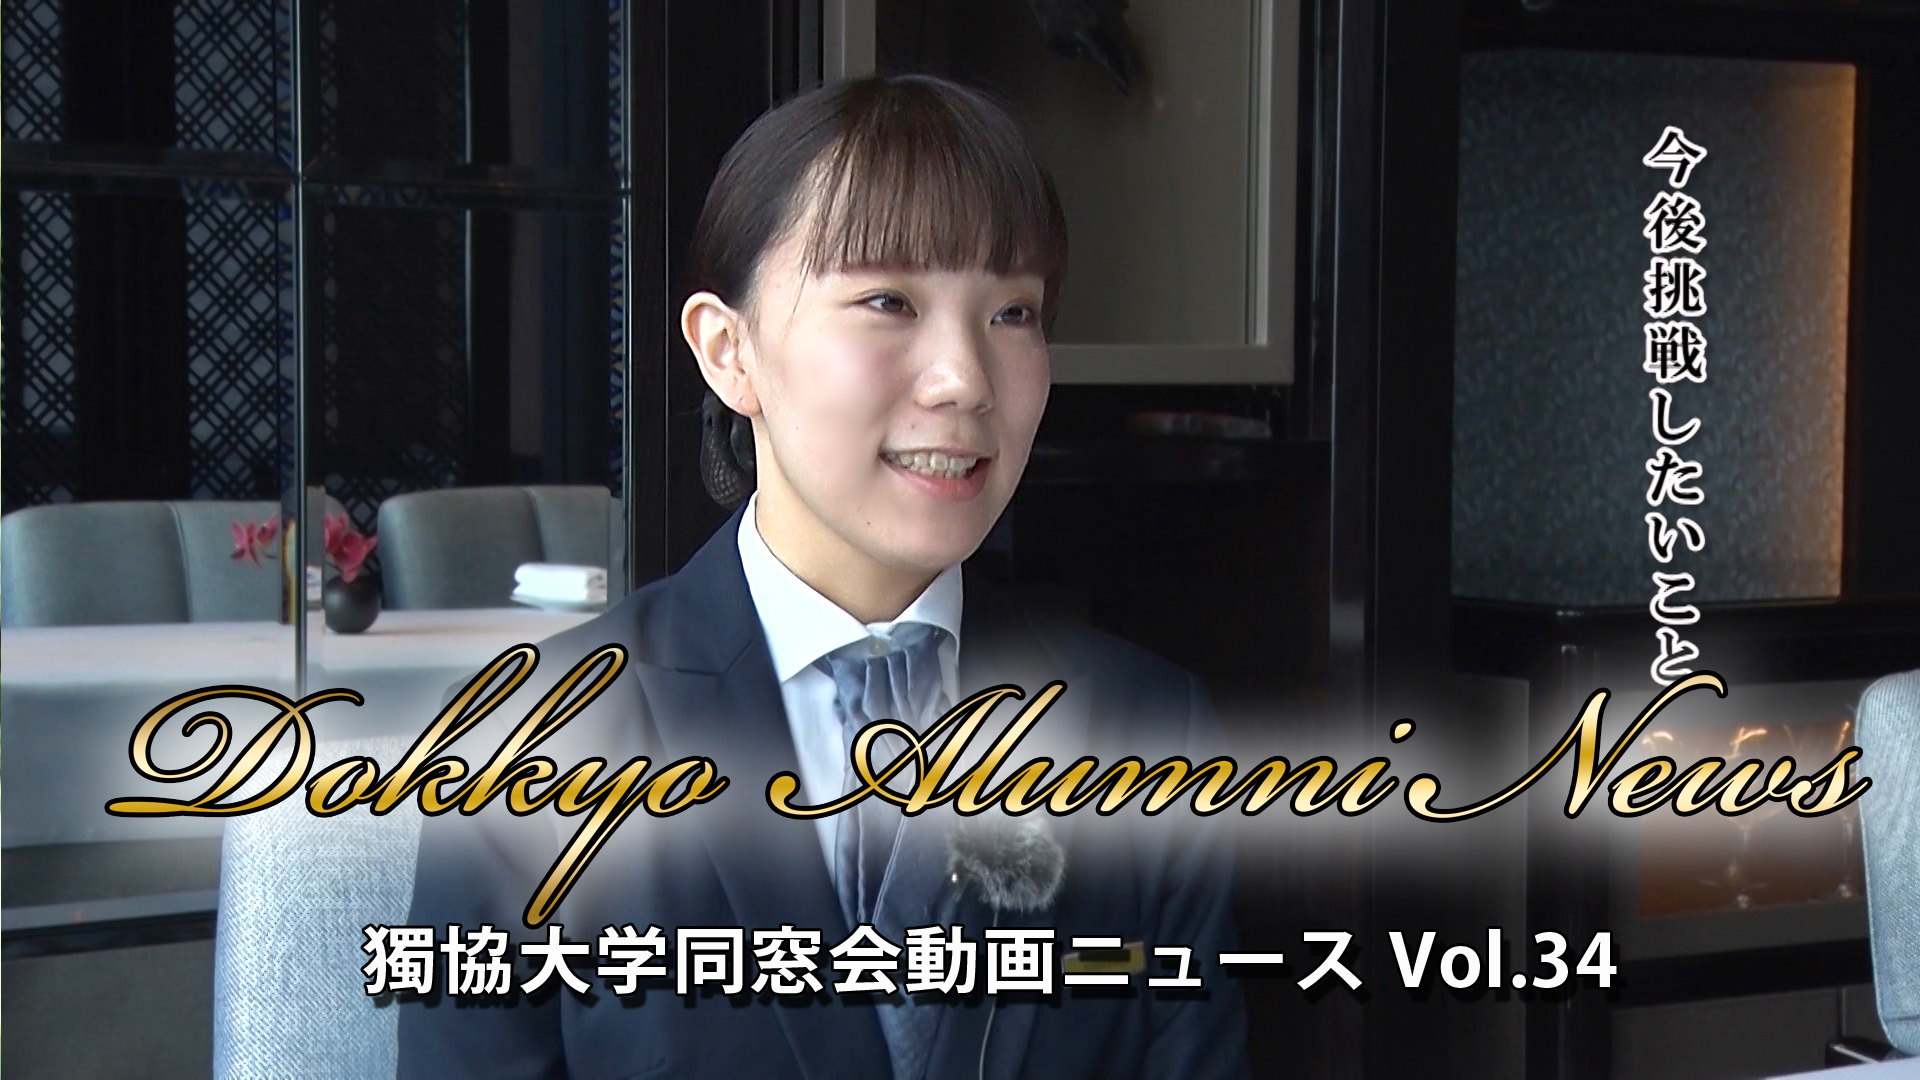 「Dokkyo Alumni News」VOL.34を公開!